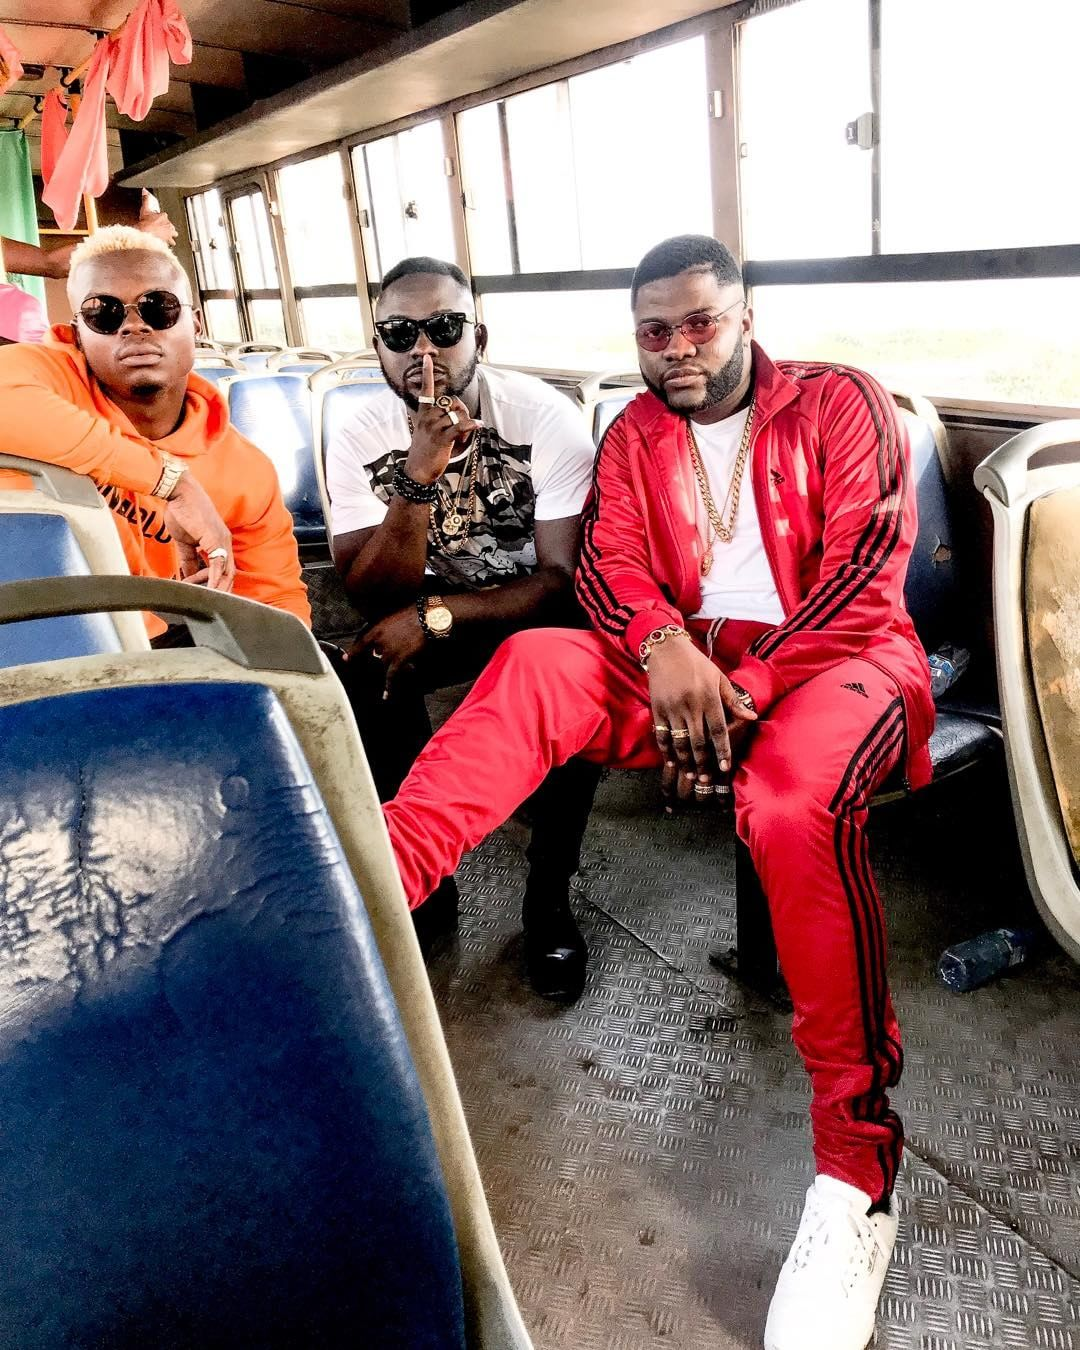 From L to R: Harmonize, omoakin and Skales. photo credit: Instagram/youngskales